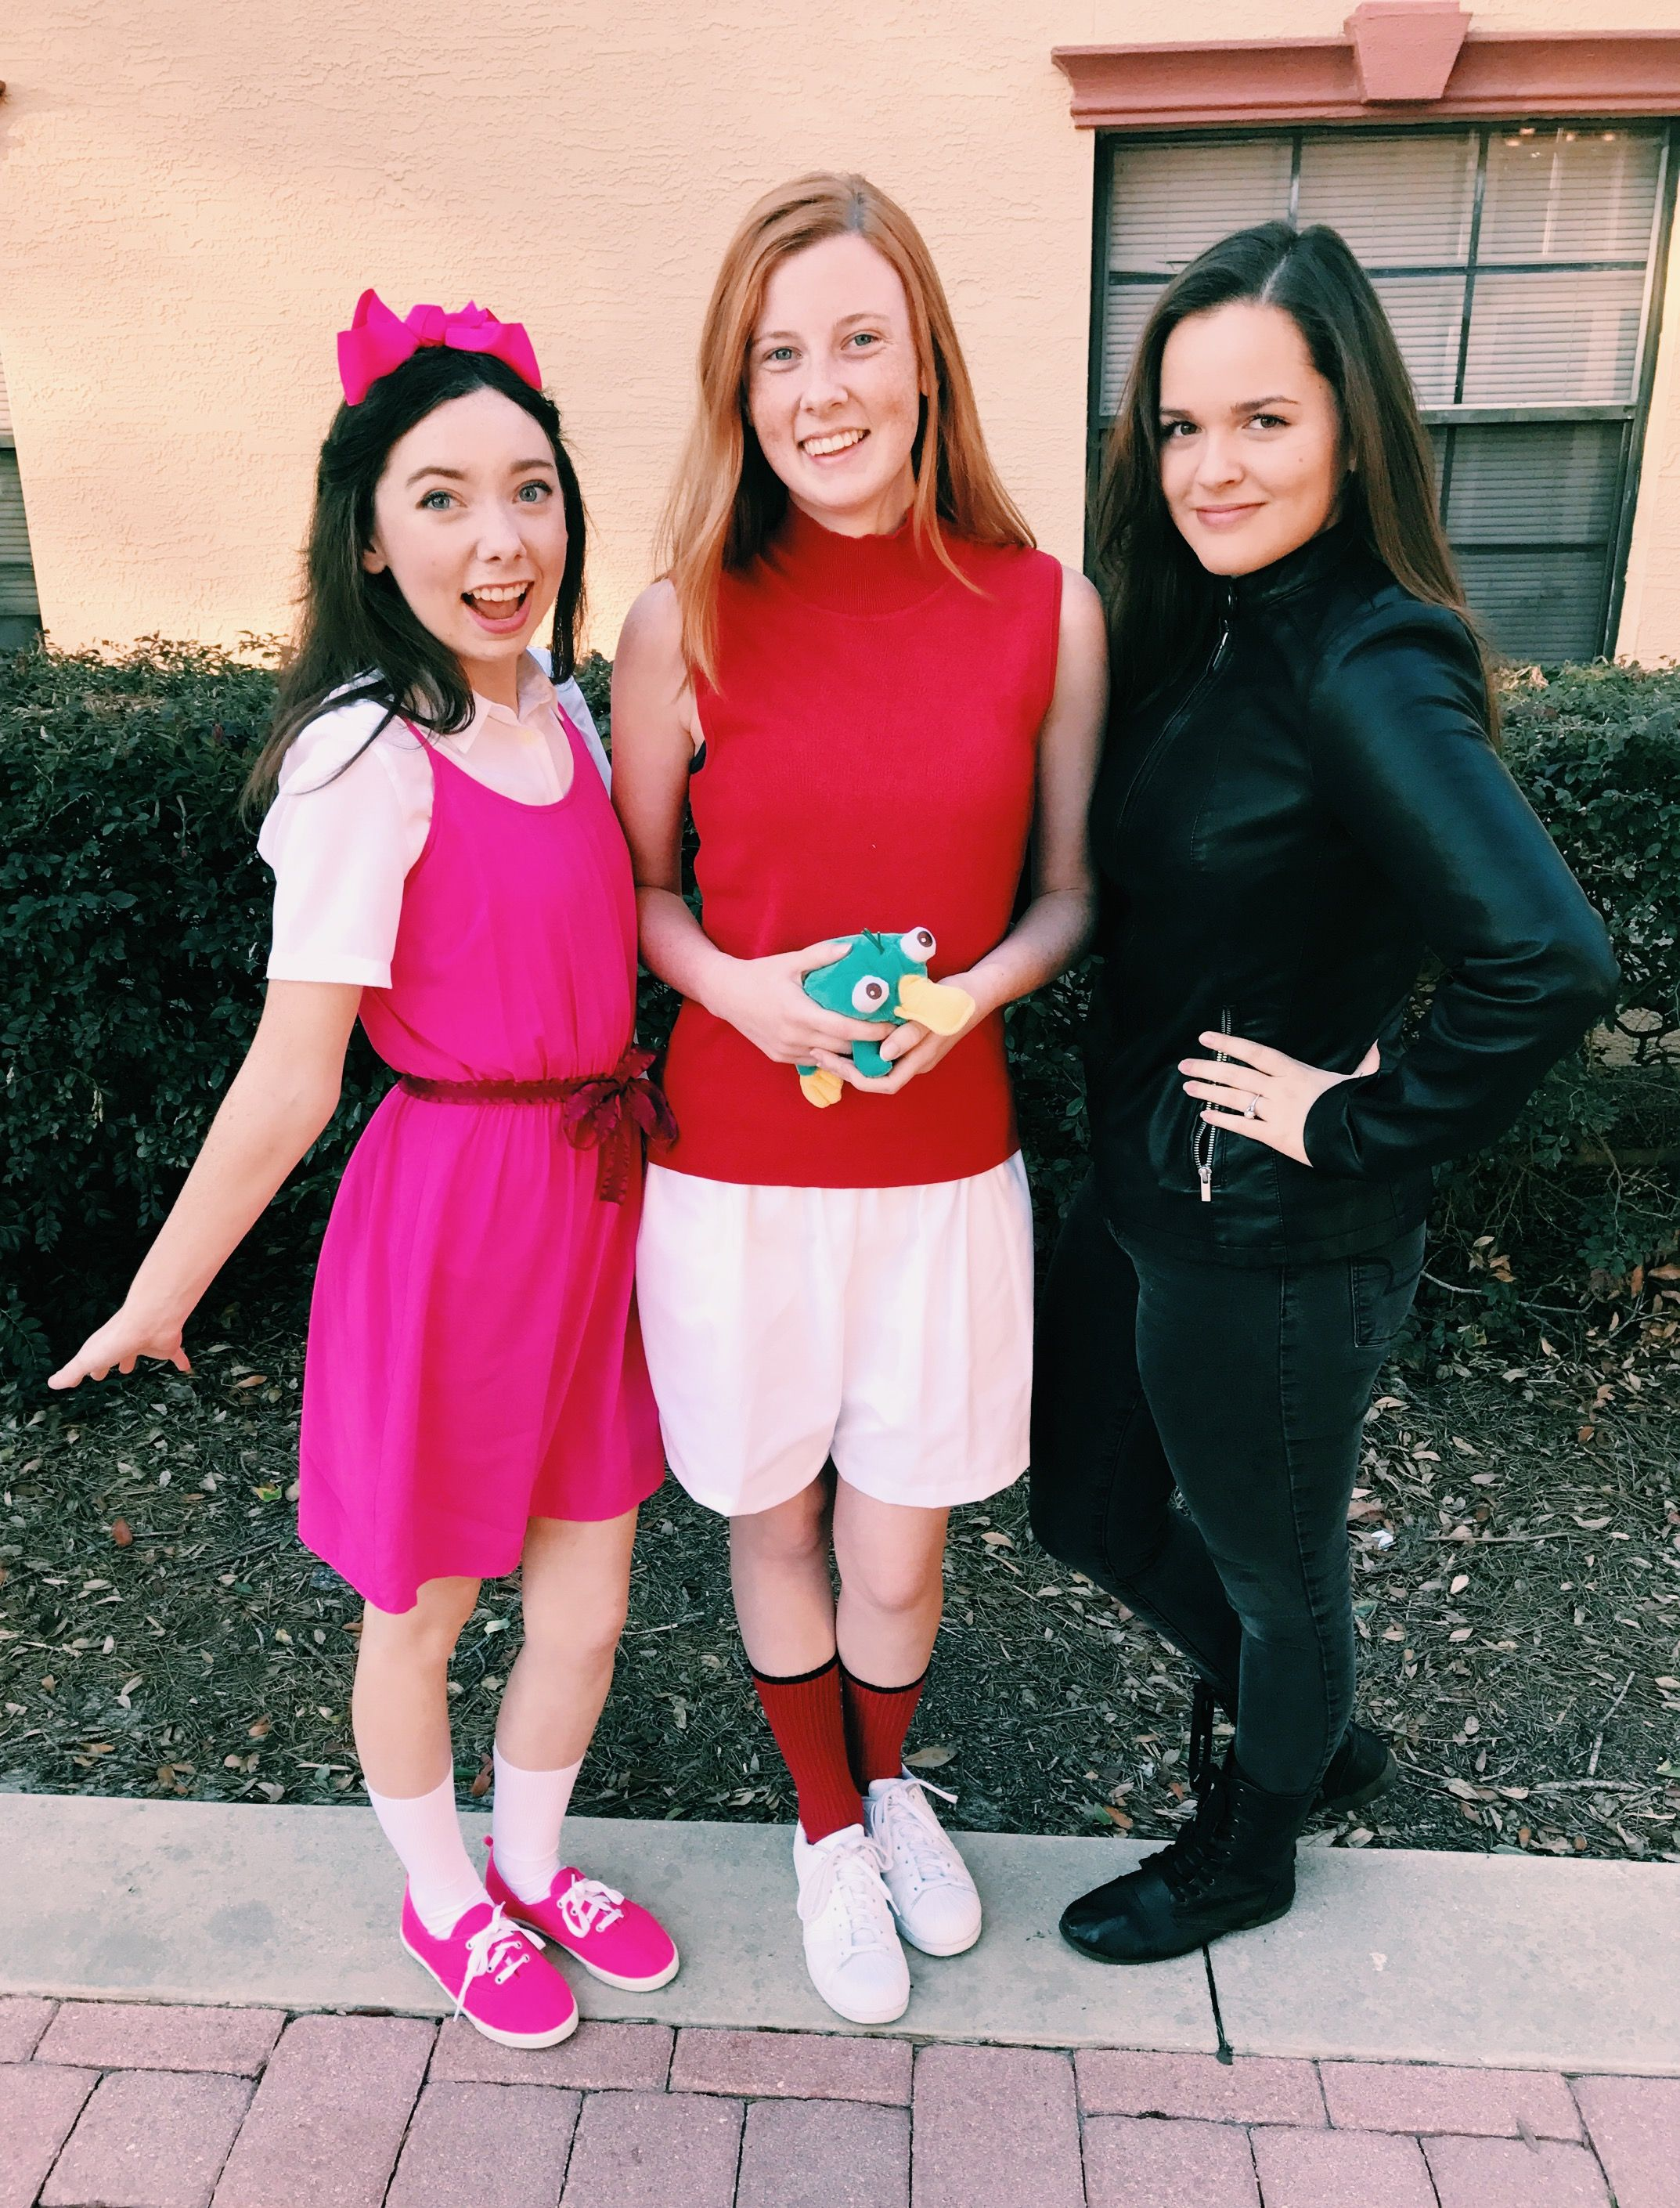 phineas and ferb group halloween costumes for girls | it all started